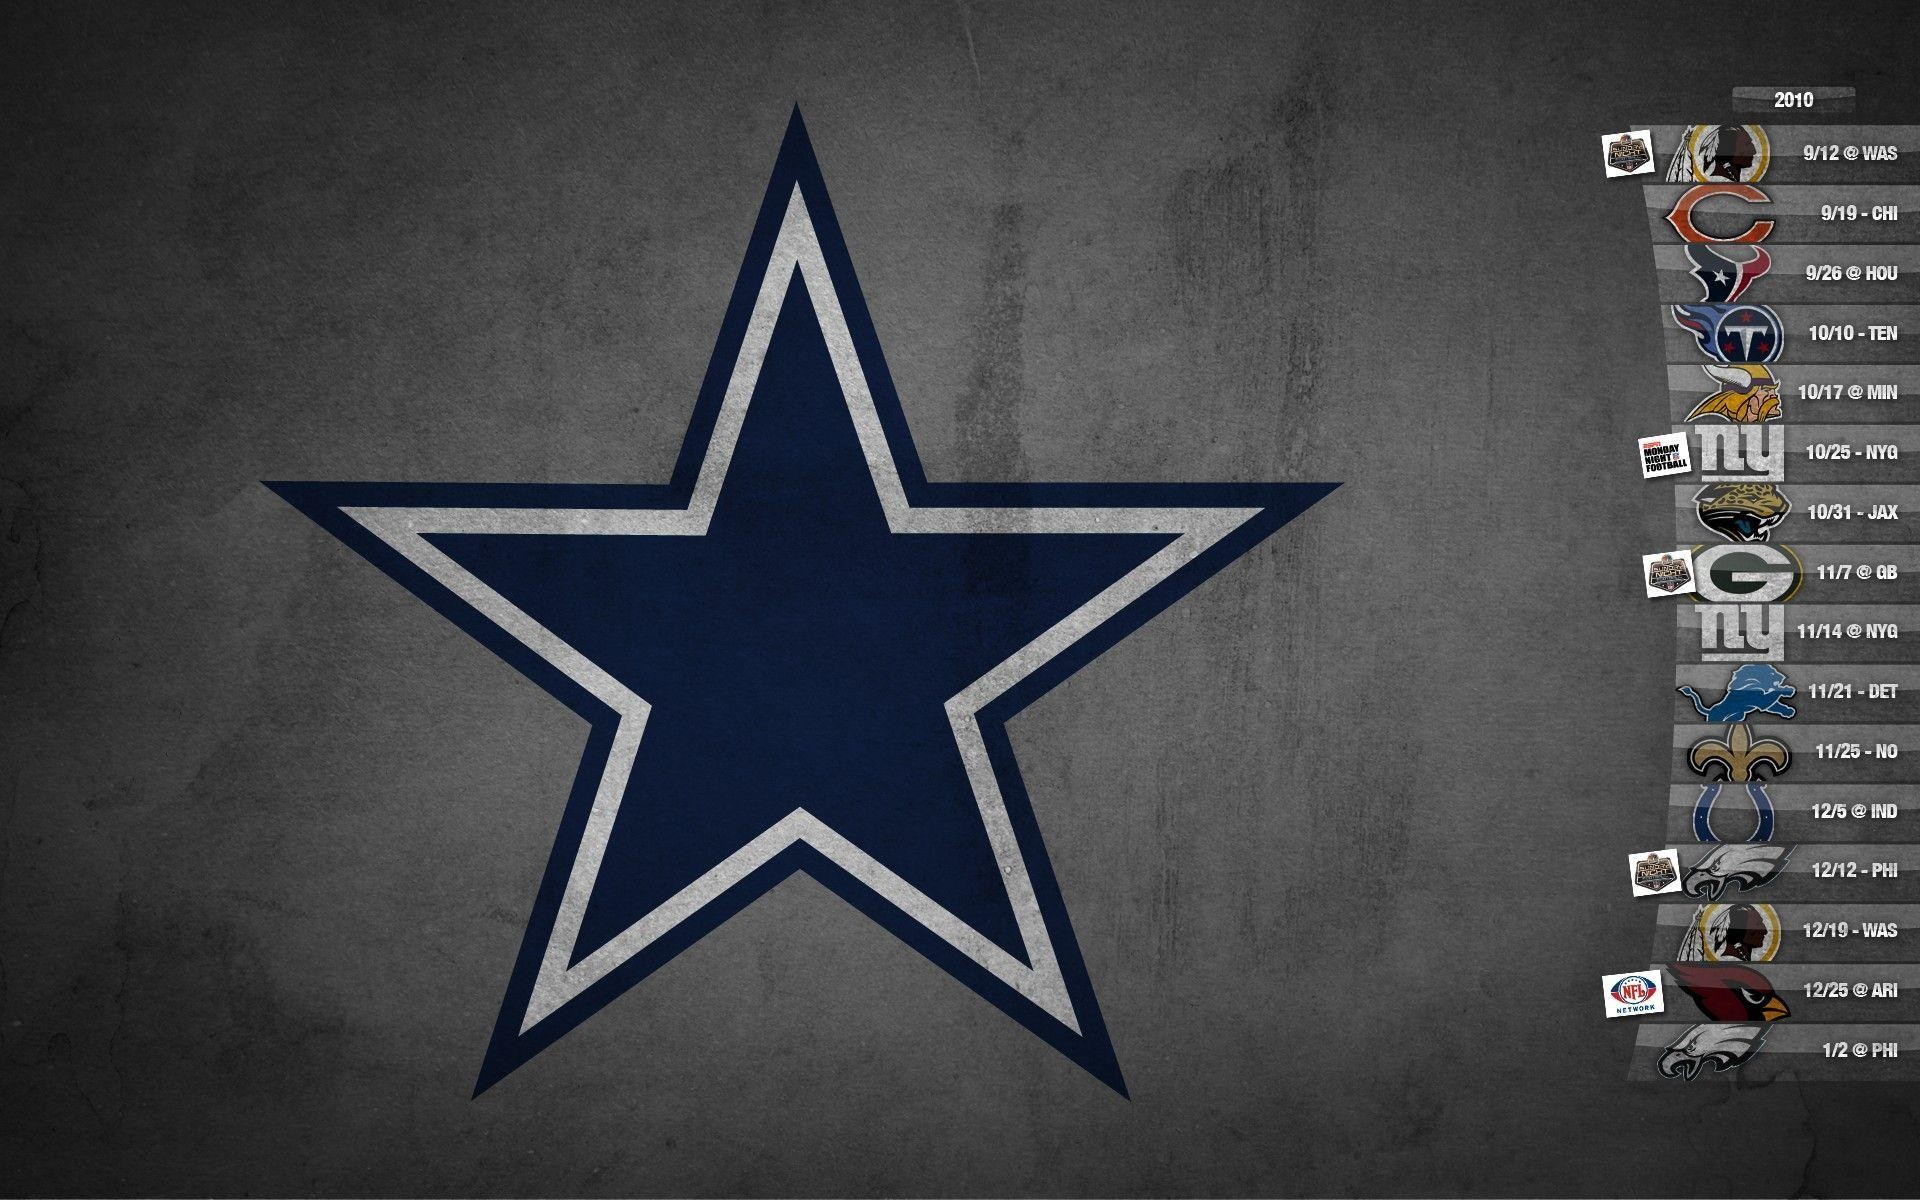 dallas cowboys desktop wallpaper (the best 63+ images in 2018)